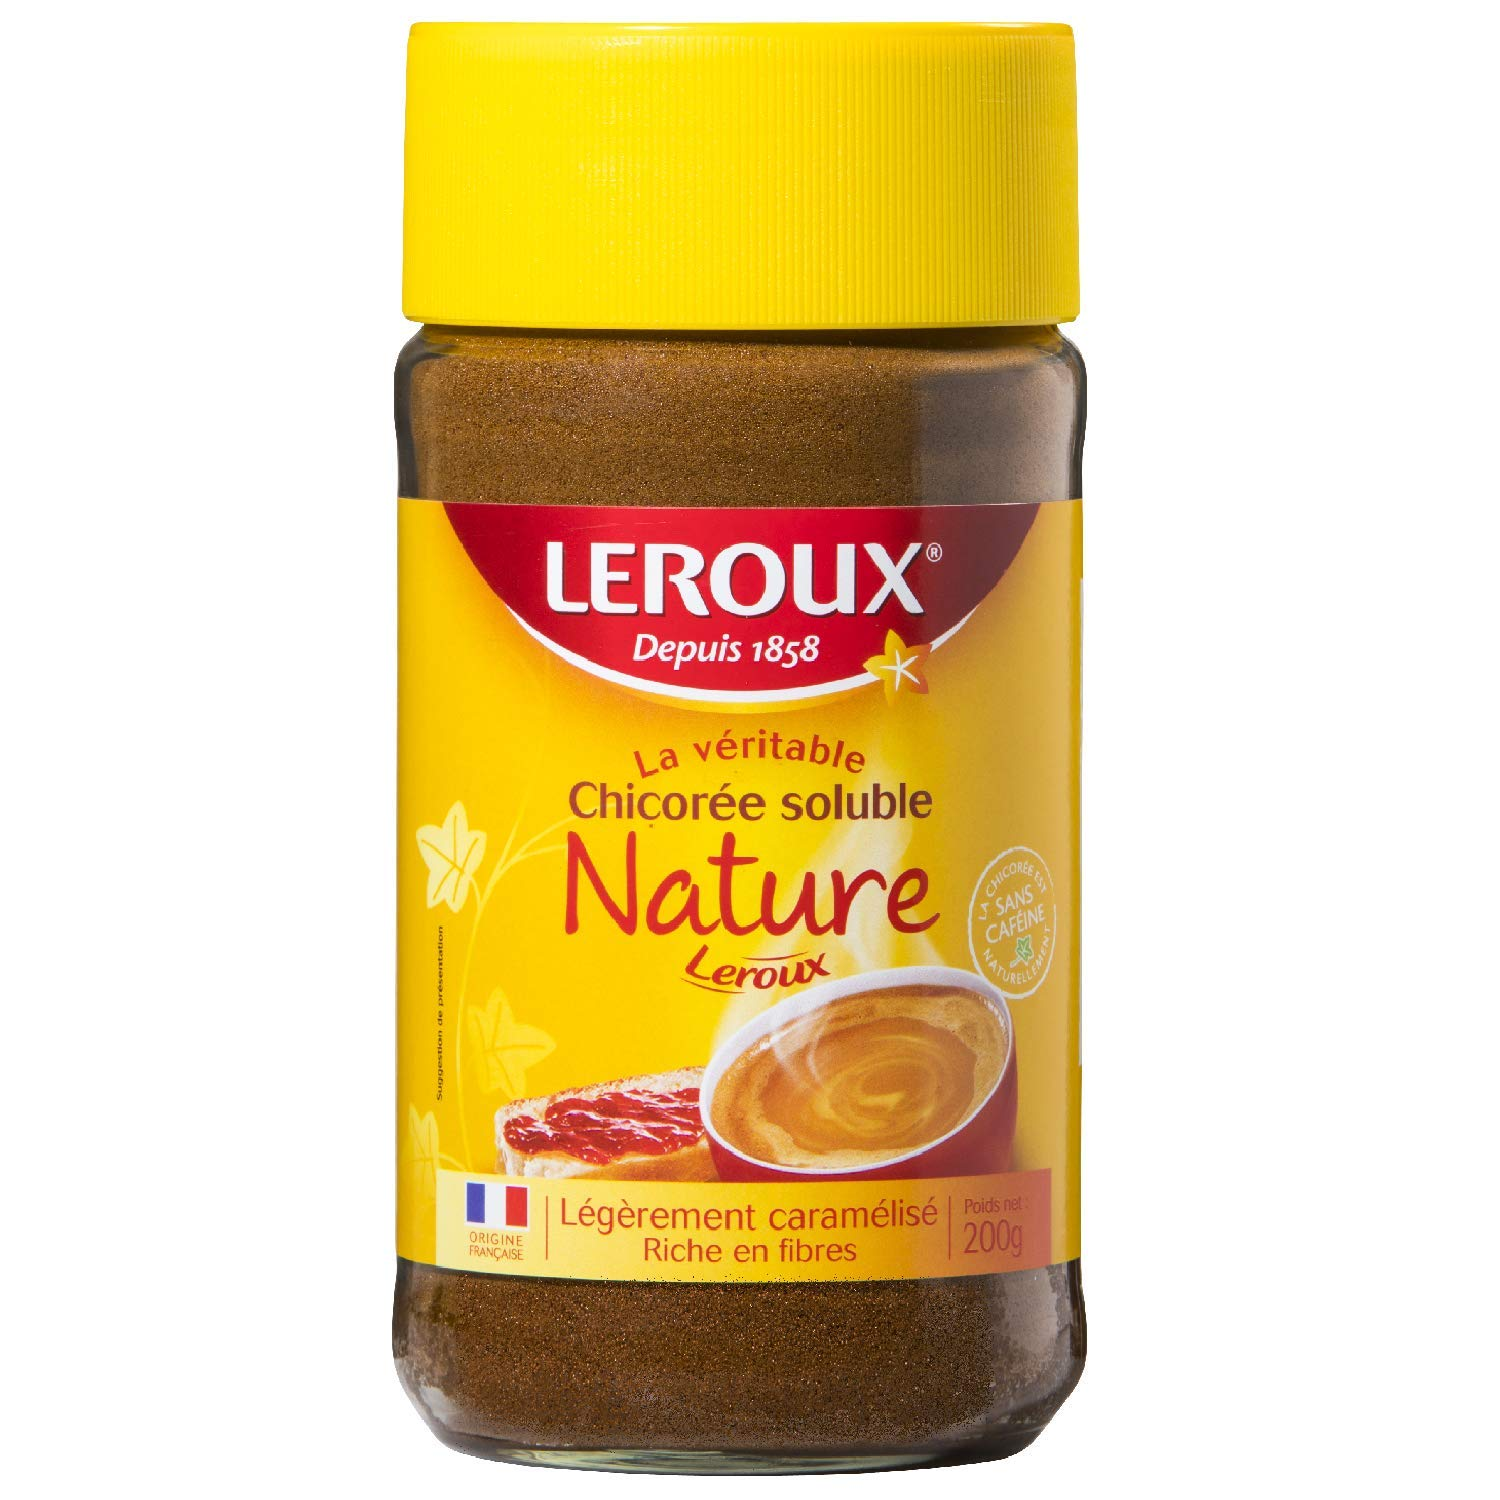 Leroux Regular Instant Chicory 7oz/200g